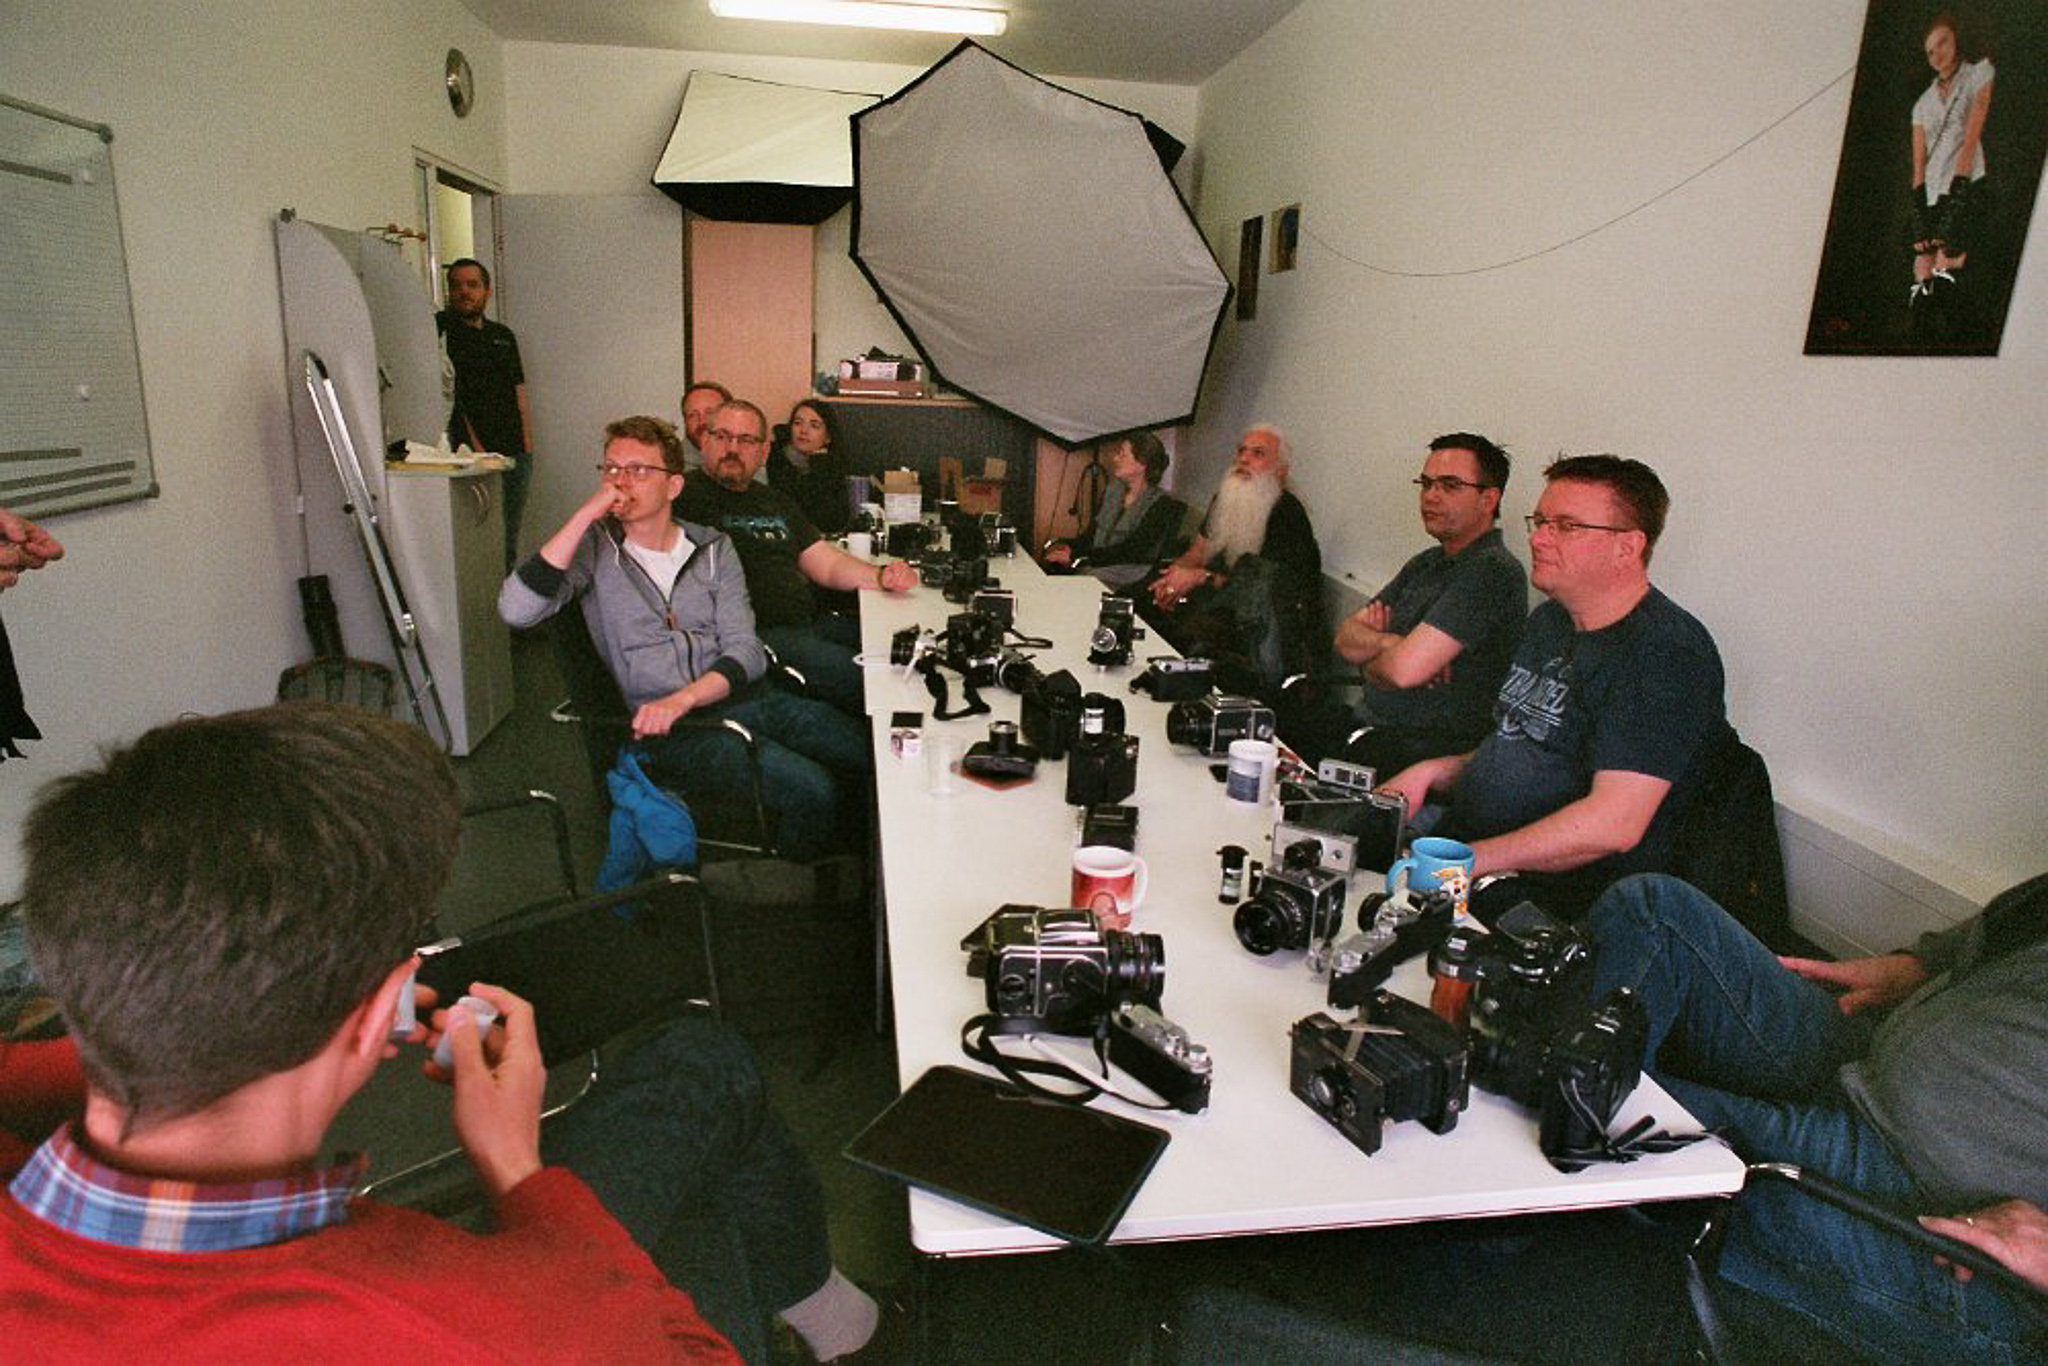 Analog-Extrem-Workshop-012.jpg